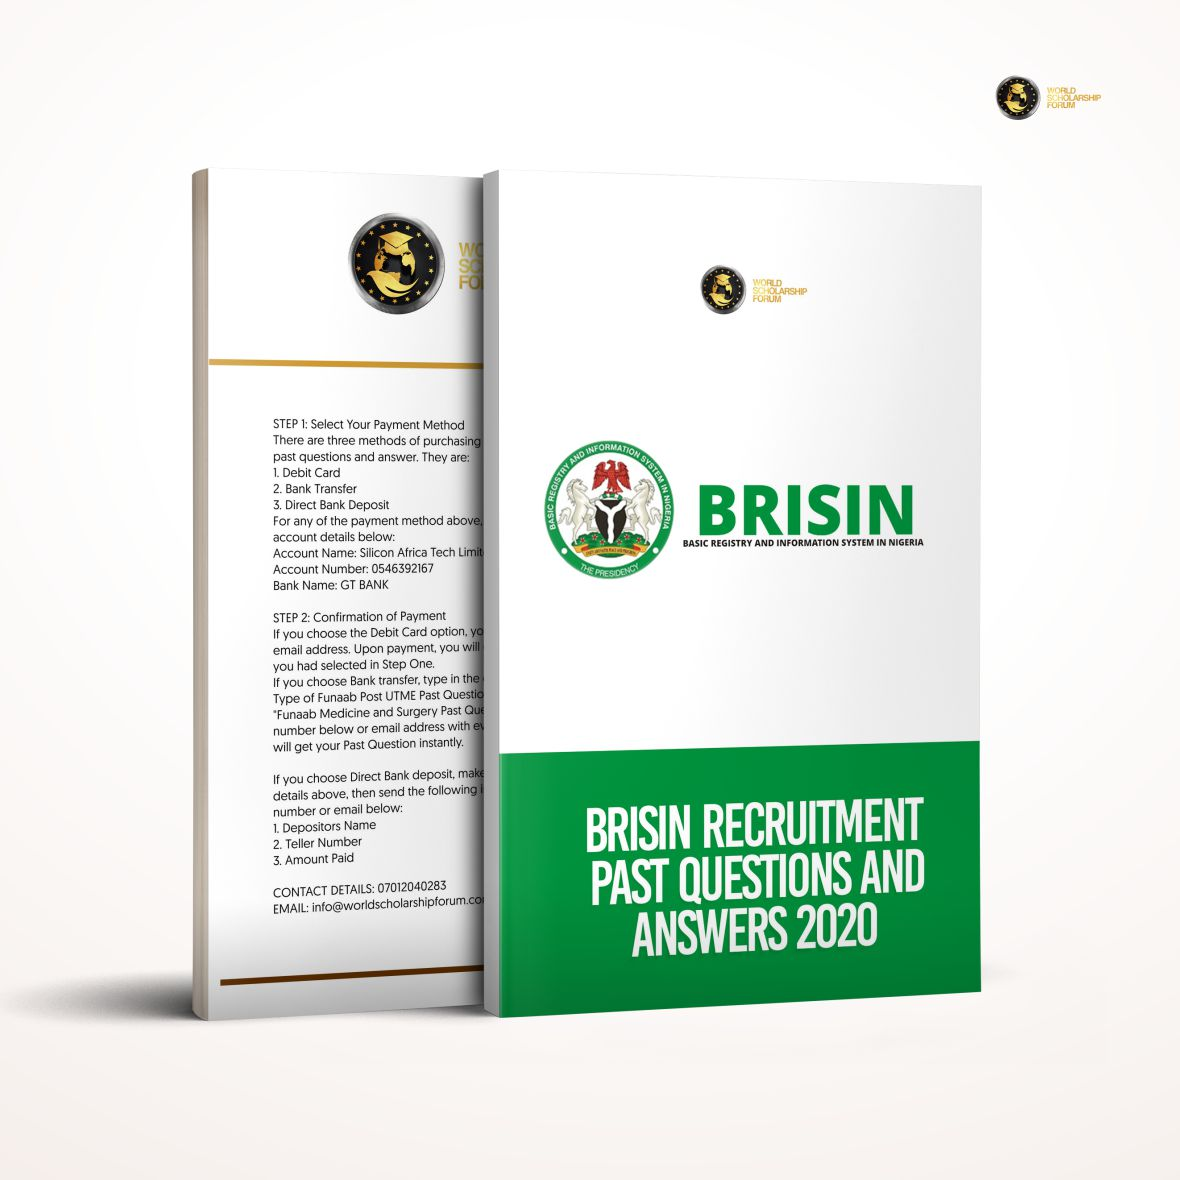 Brisin Recruitment Past Questions And Answers